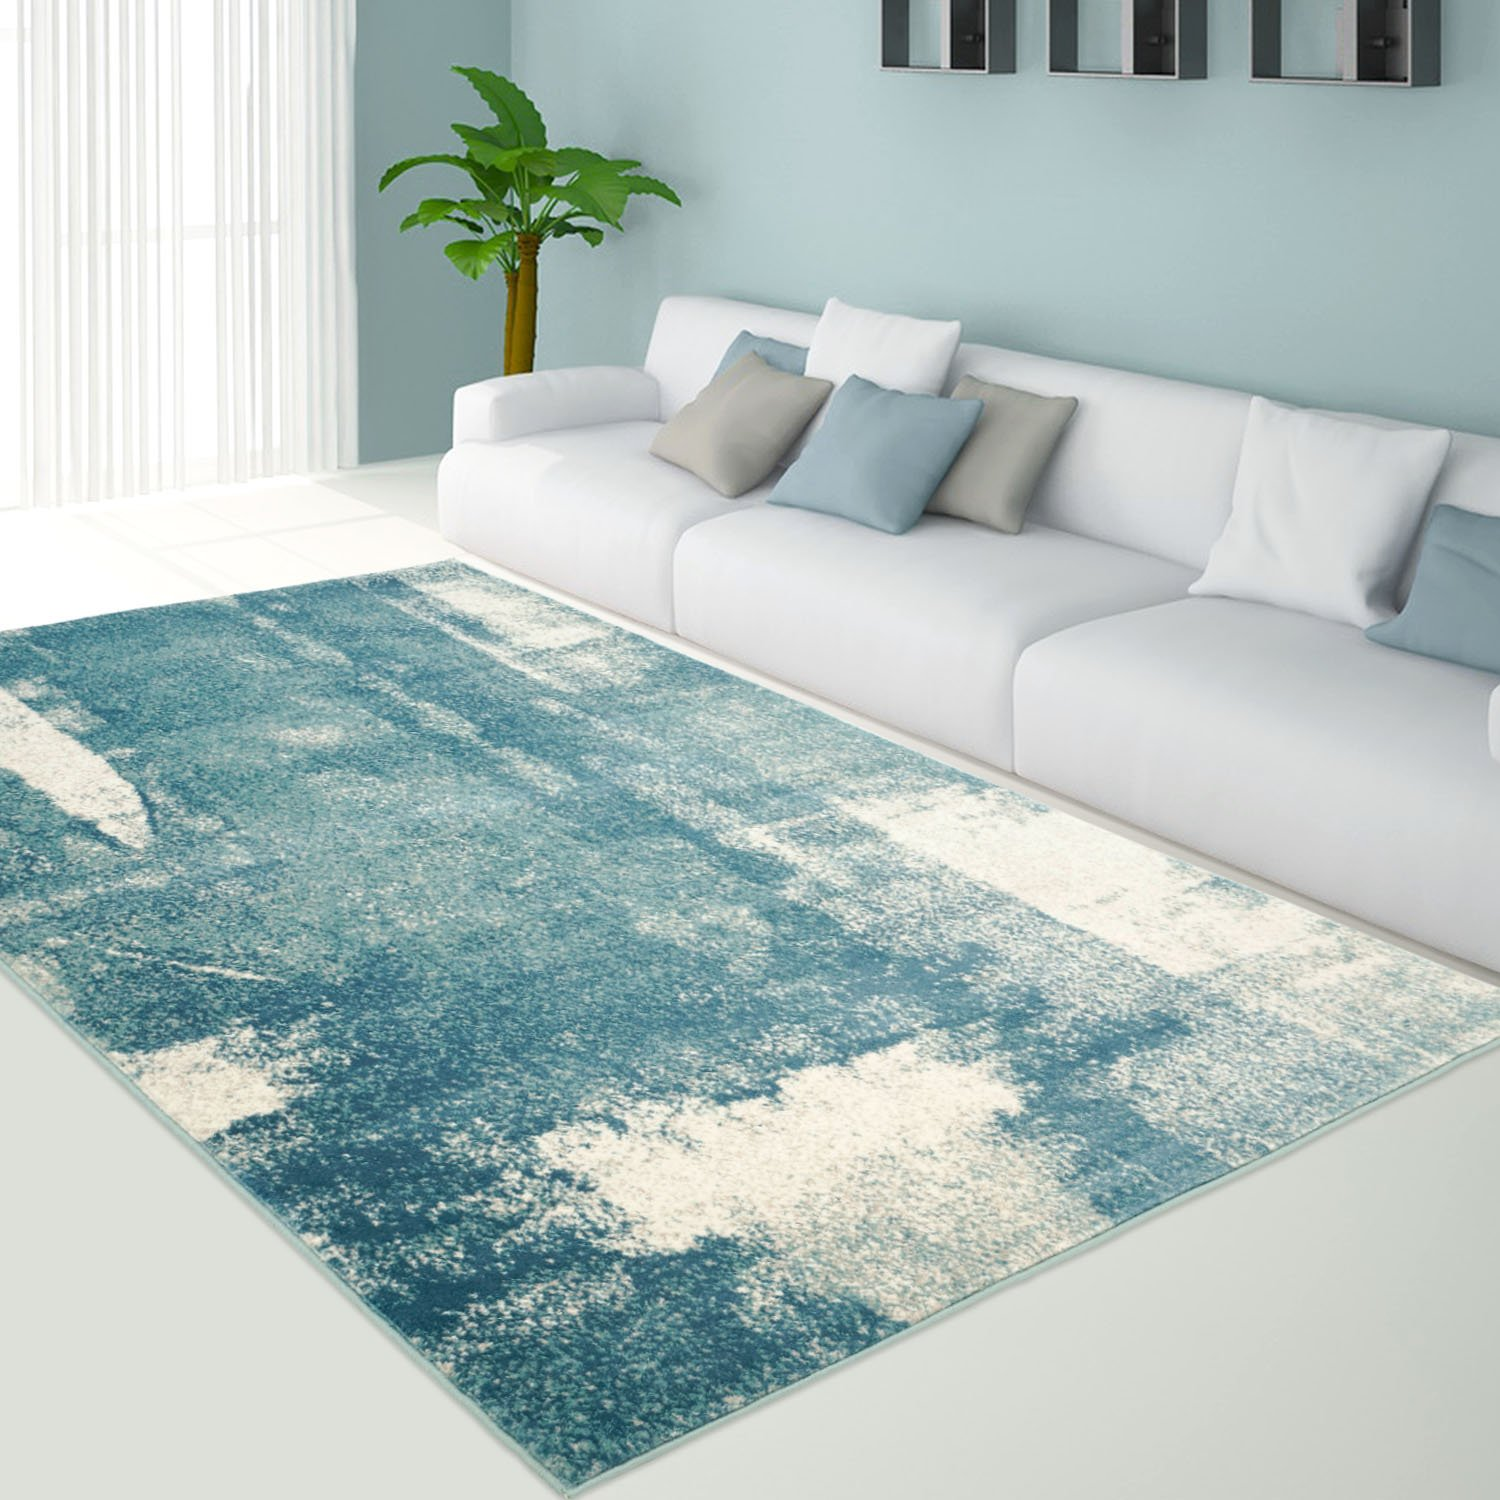 ladole rugs turquoise blue and black grey extra large area rug carpet for living room patio size